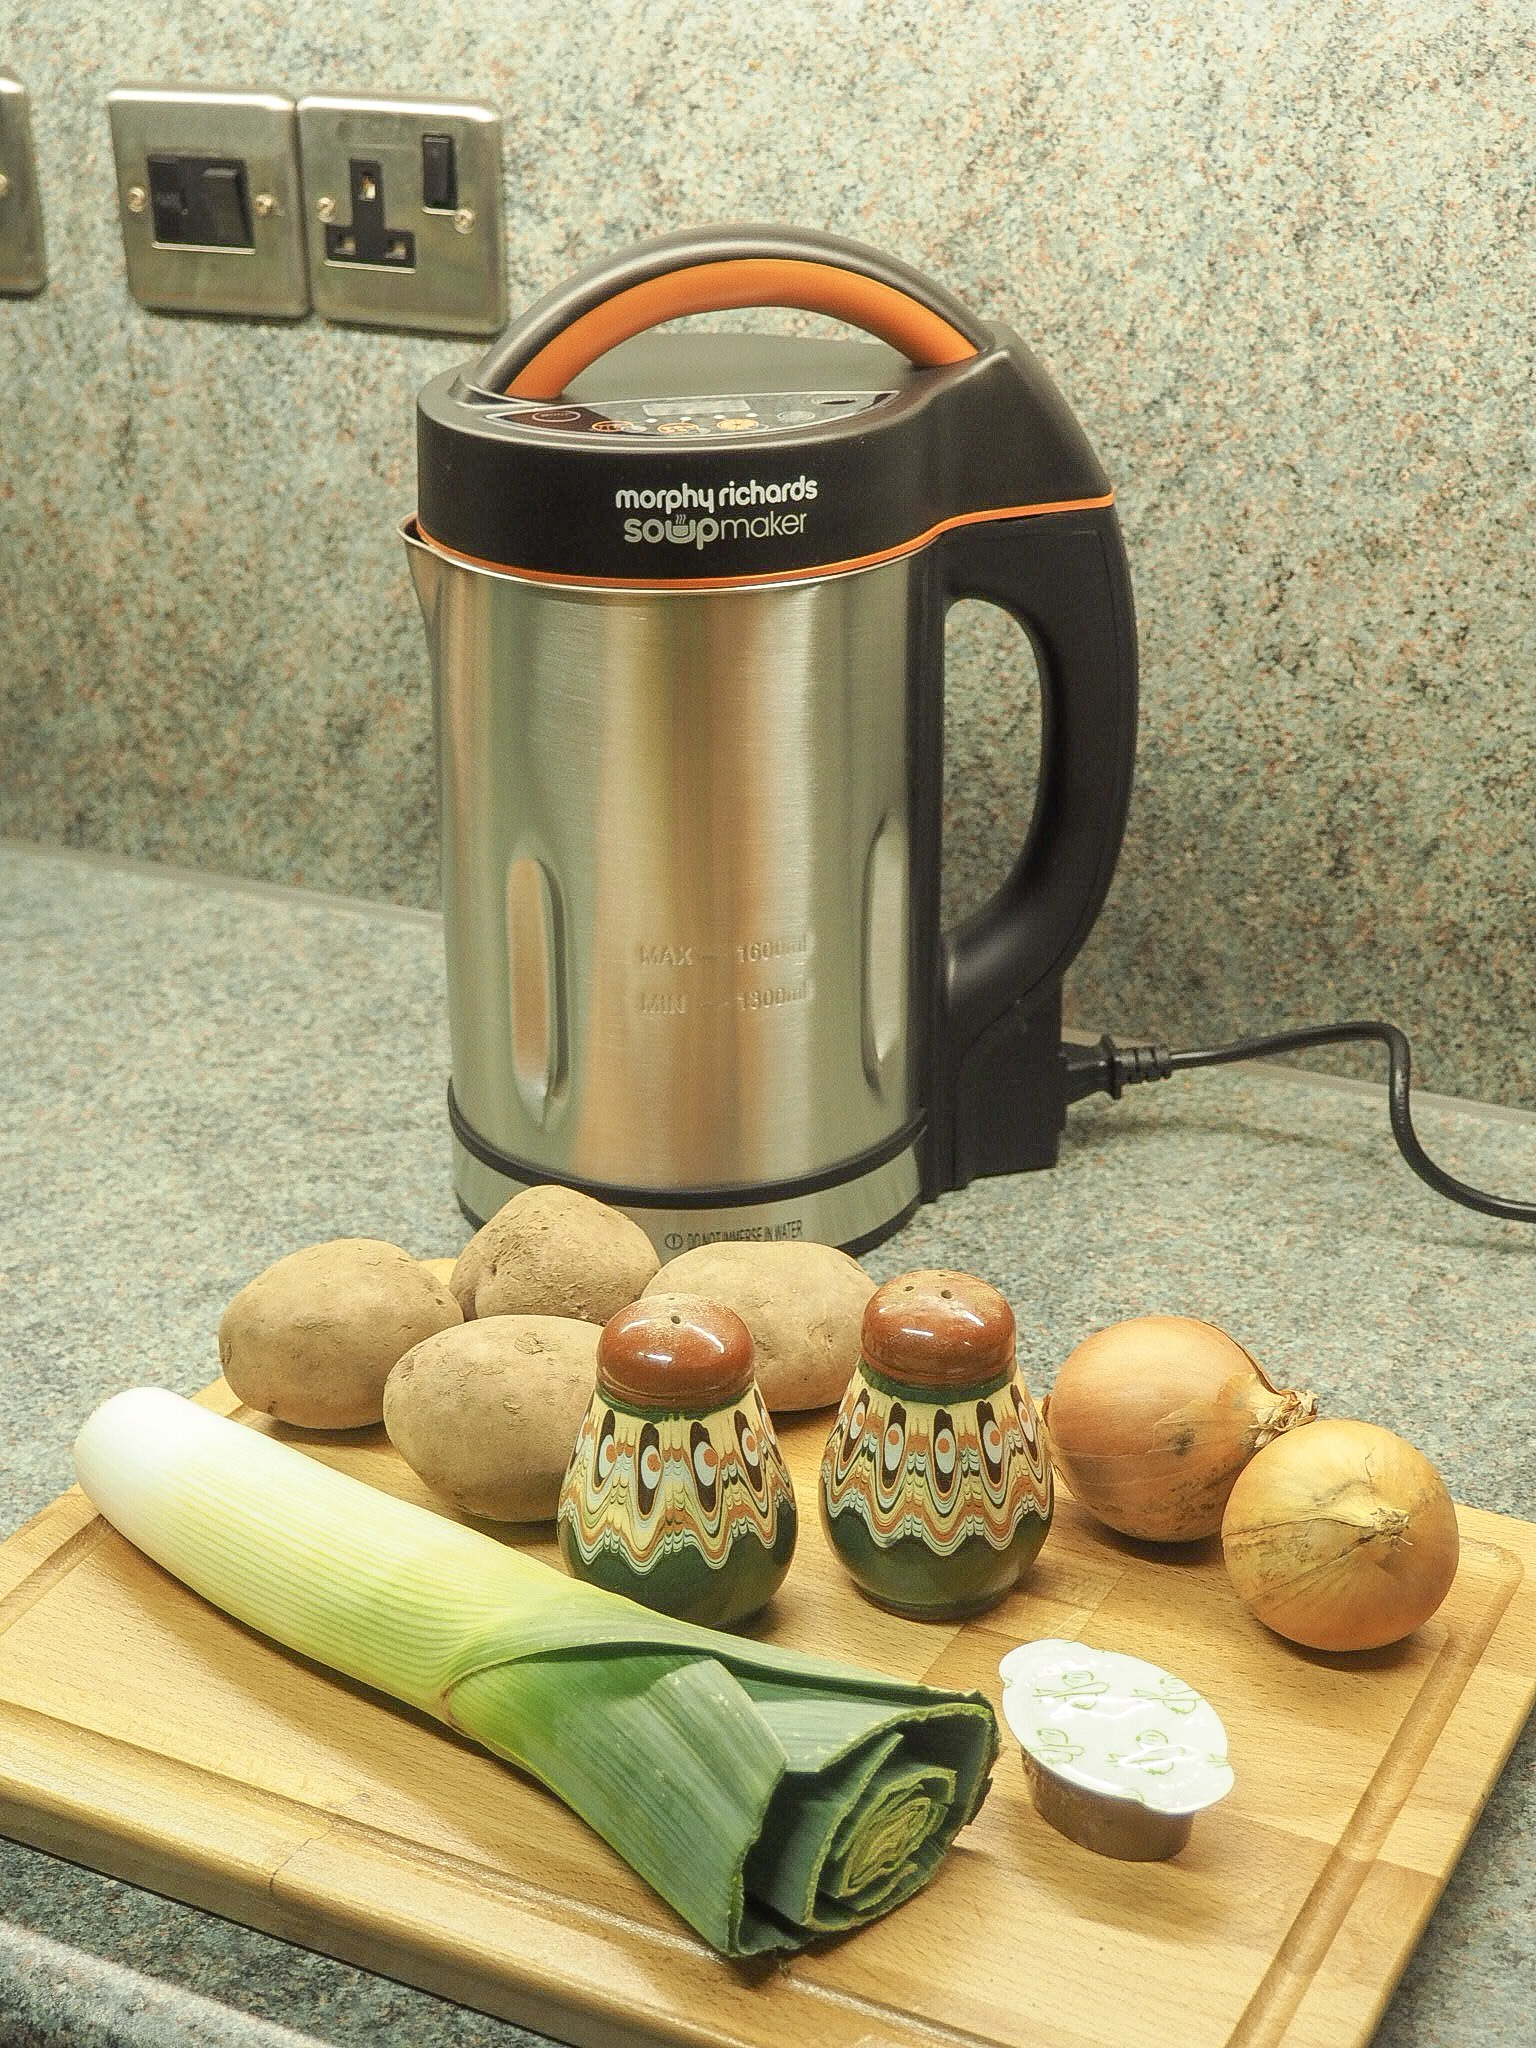 Morphy Richards soup maker recipes